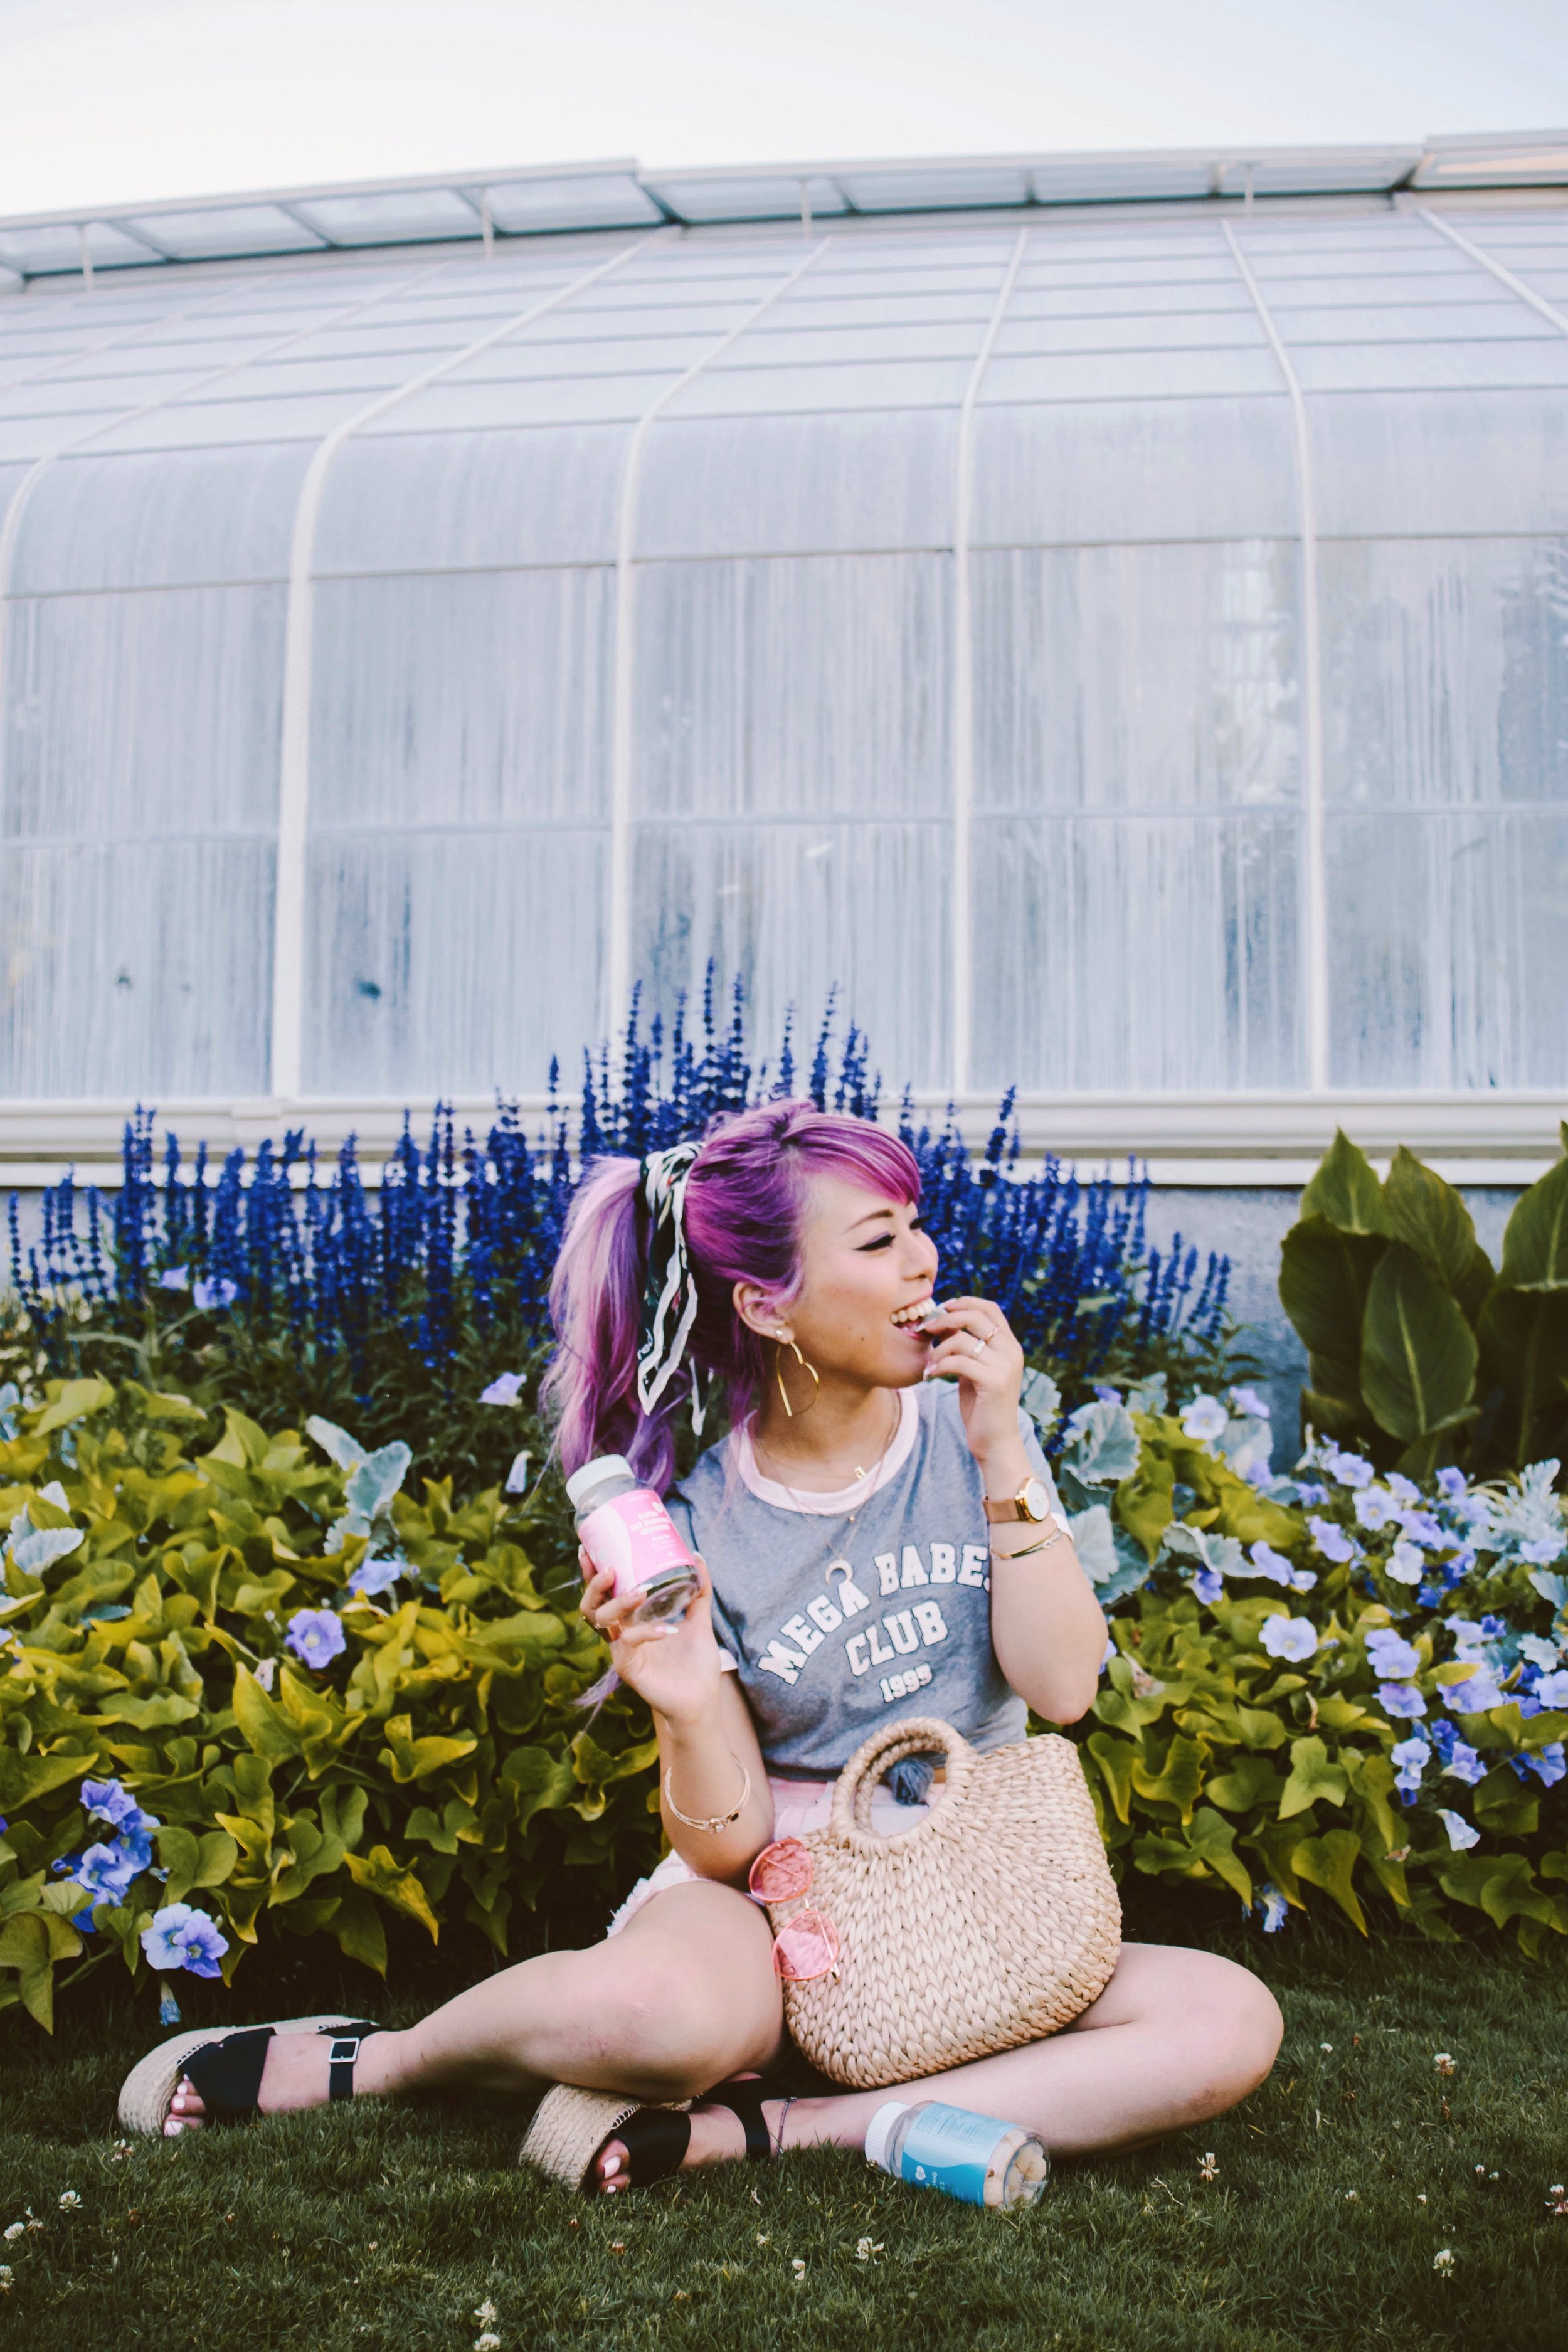 SkinnyMint Super Fat Burning Gummies_Purple Hair_Lifestyle_healthy-ootd-pony tail-summer-happy-supliment-fut burning-weight loss-style blogger-seattle fashion blogger-japanese-colored hair